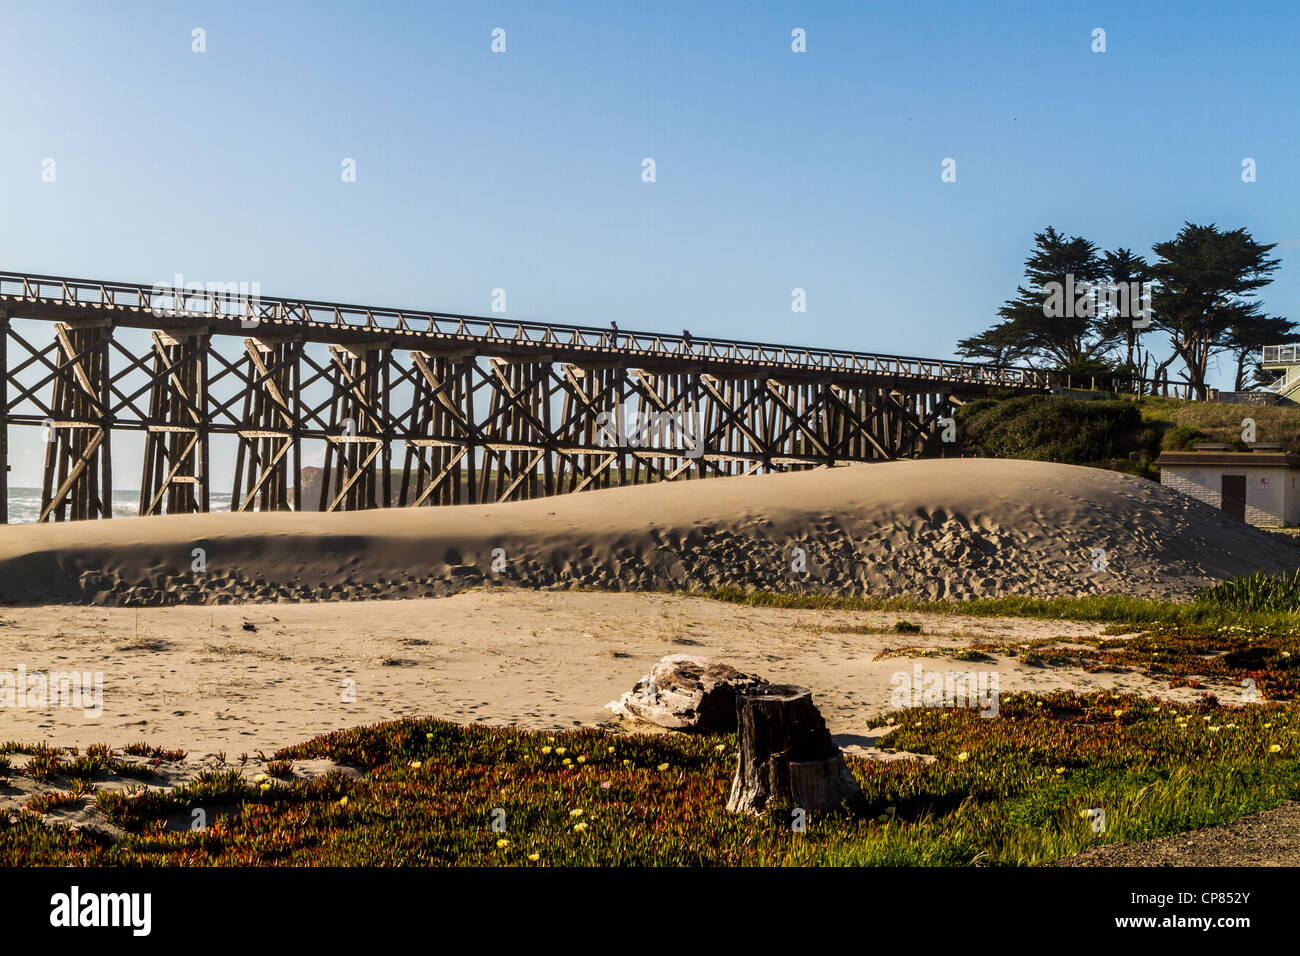 The Pudding Creek Trestle foot bridge part of the Ten Mile Trail in Fort Bragg California - Stock Image